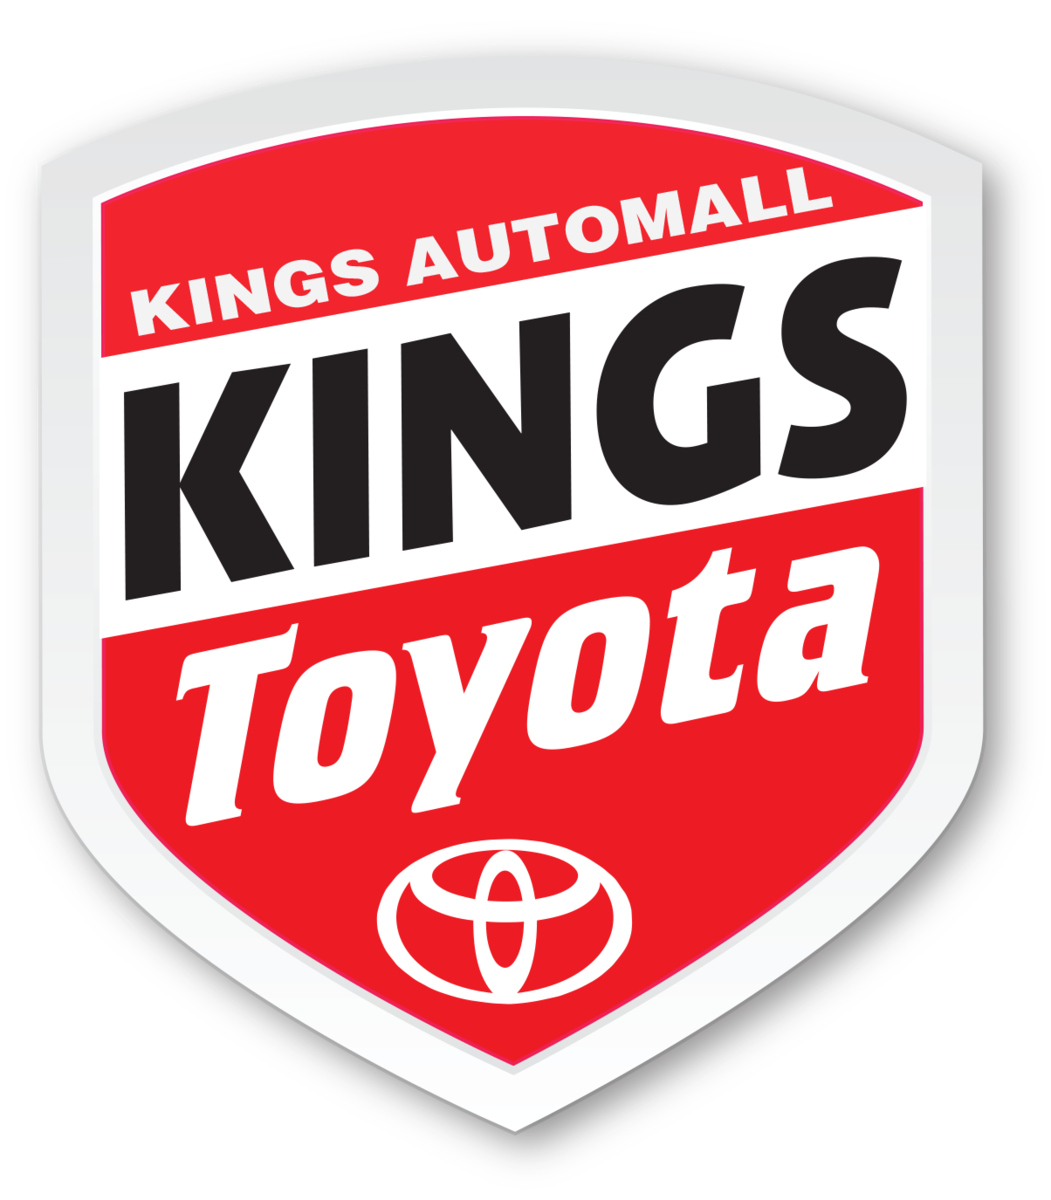 Kings Toyota Cincinnati Oh Read Consumer Reviews Browse Used And New Cars For Sale